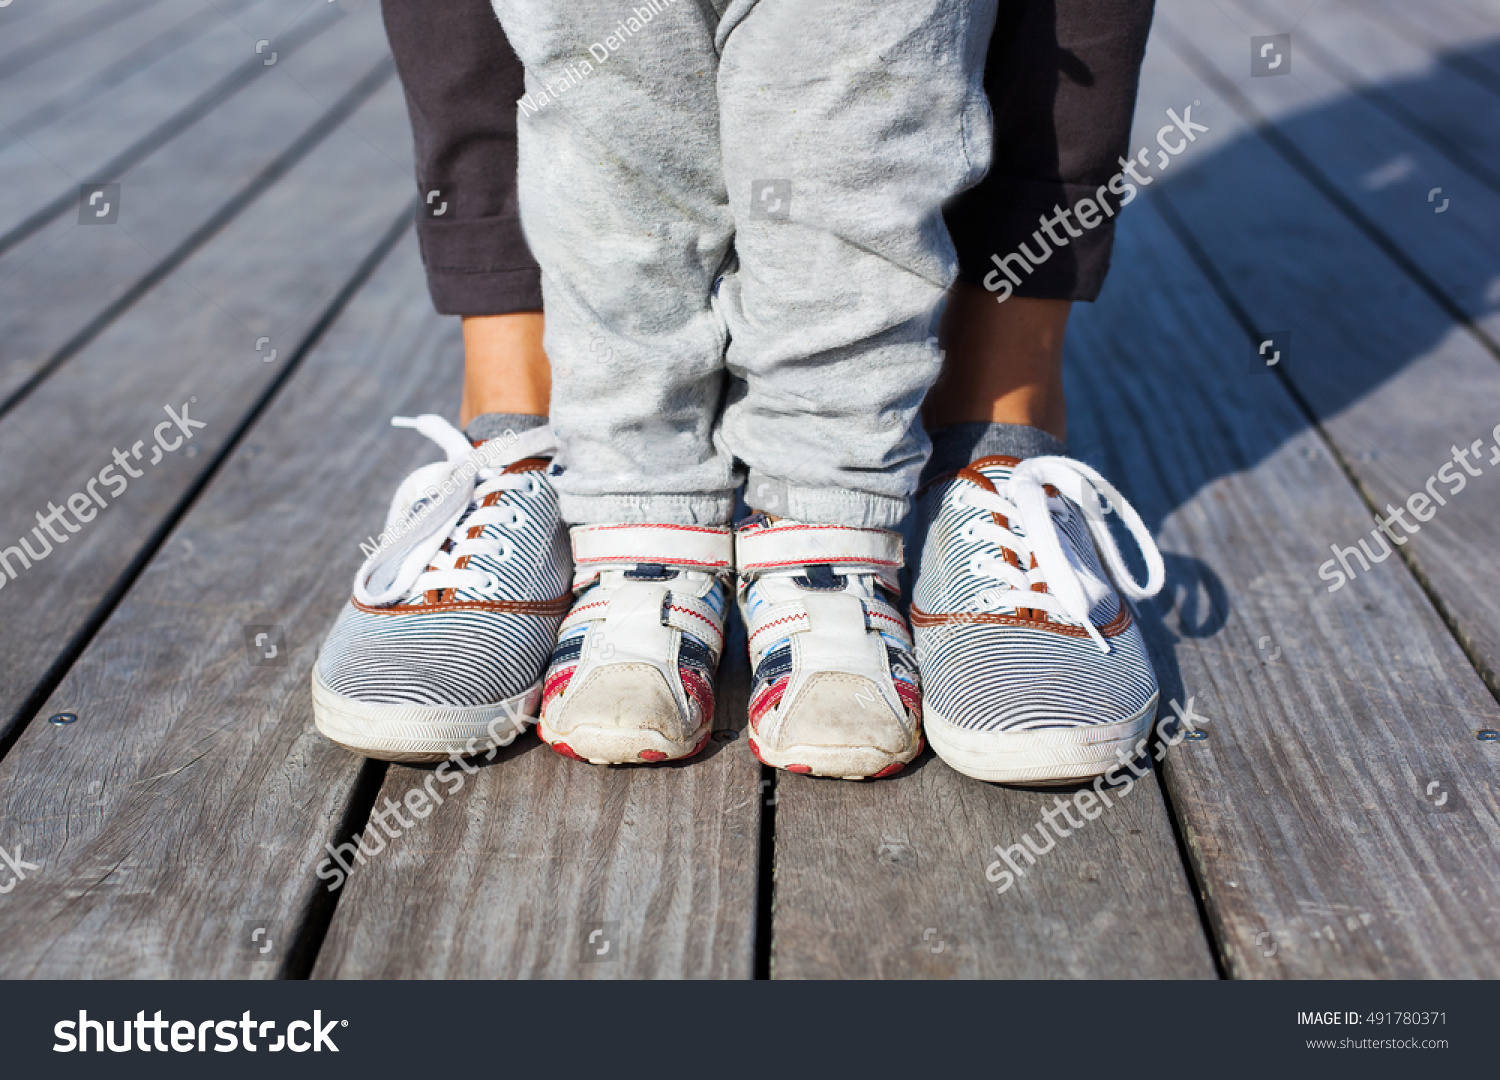 Childrens Legs Feet Shoes Adult Sneakers Stock Photo ...